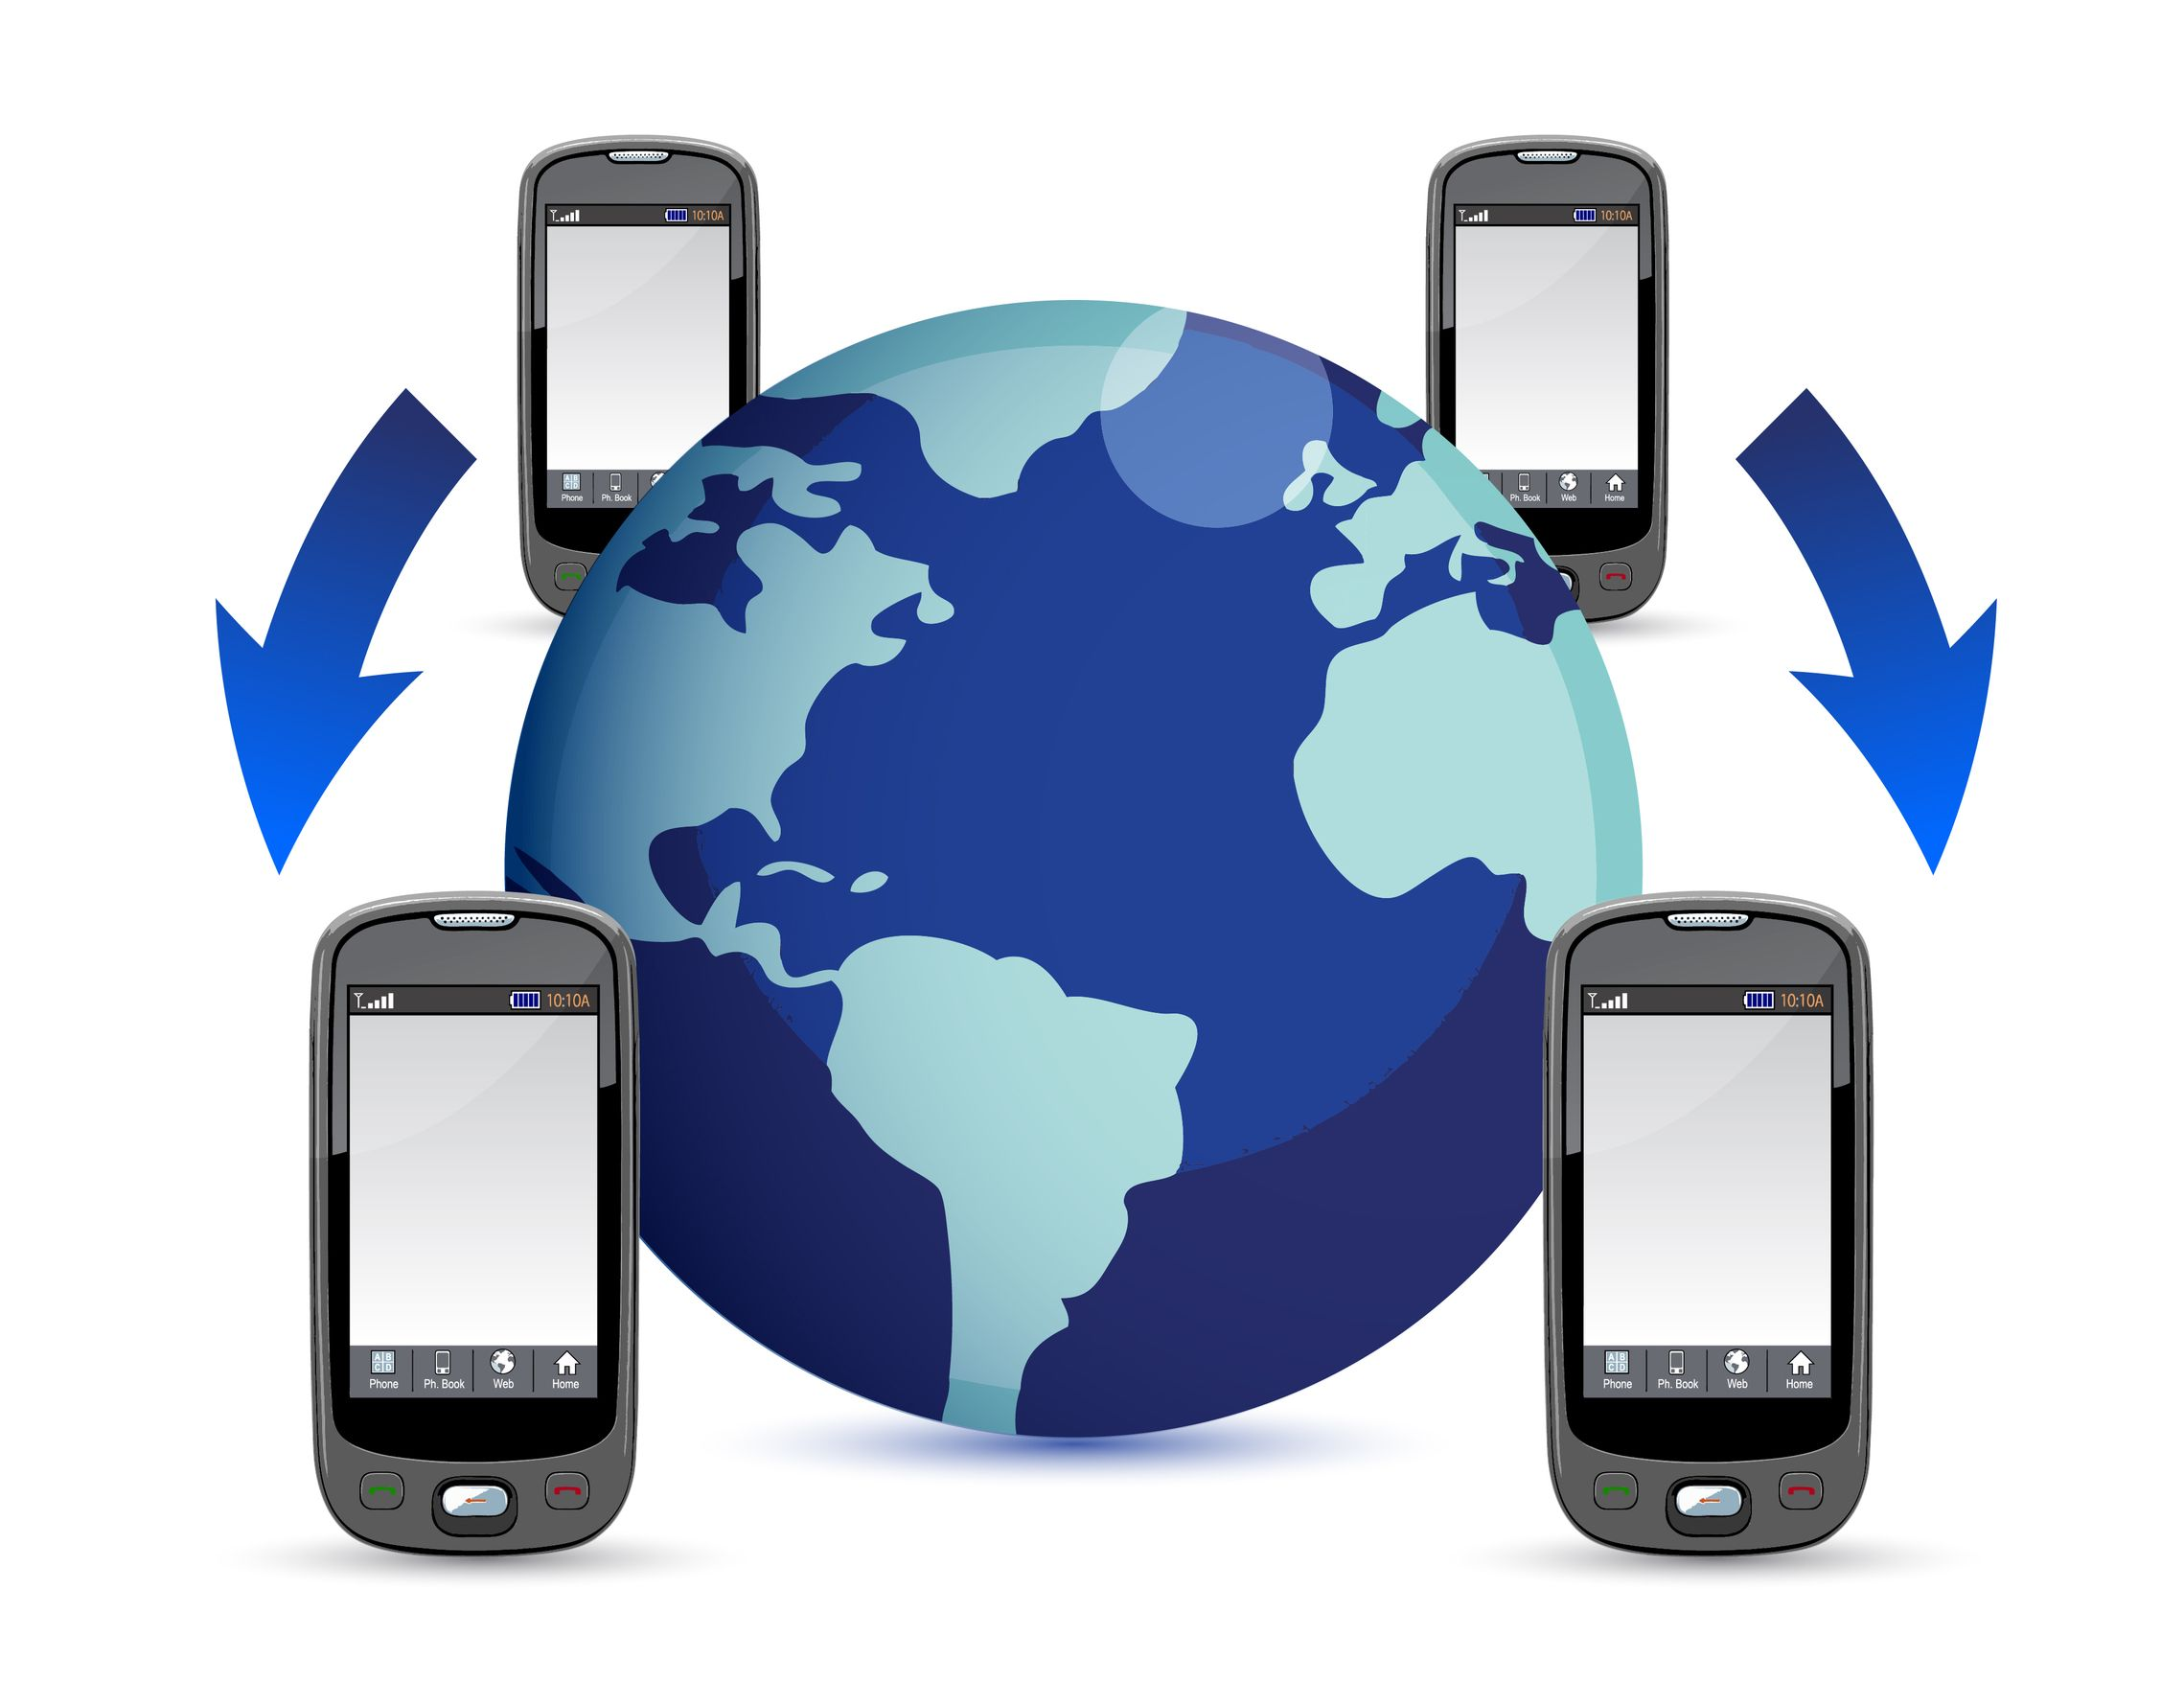 cheap international pinless calls Mobile VoIP top